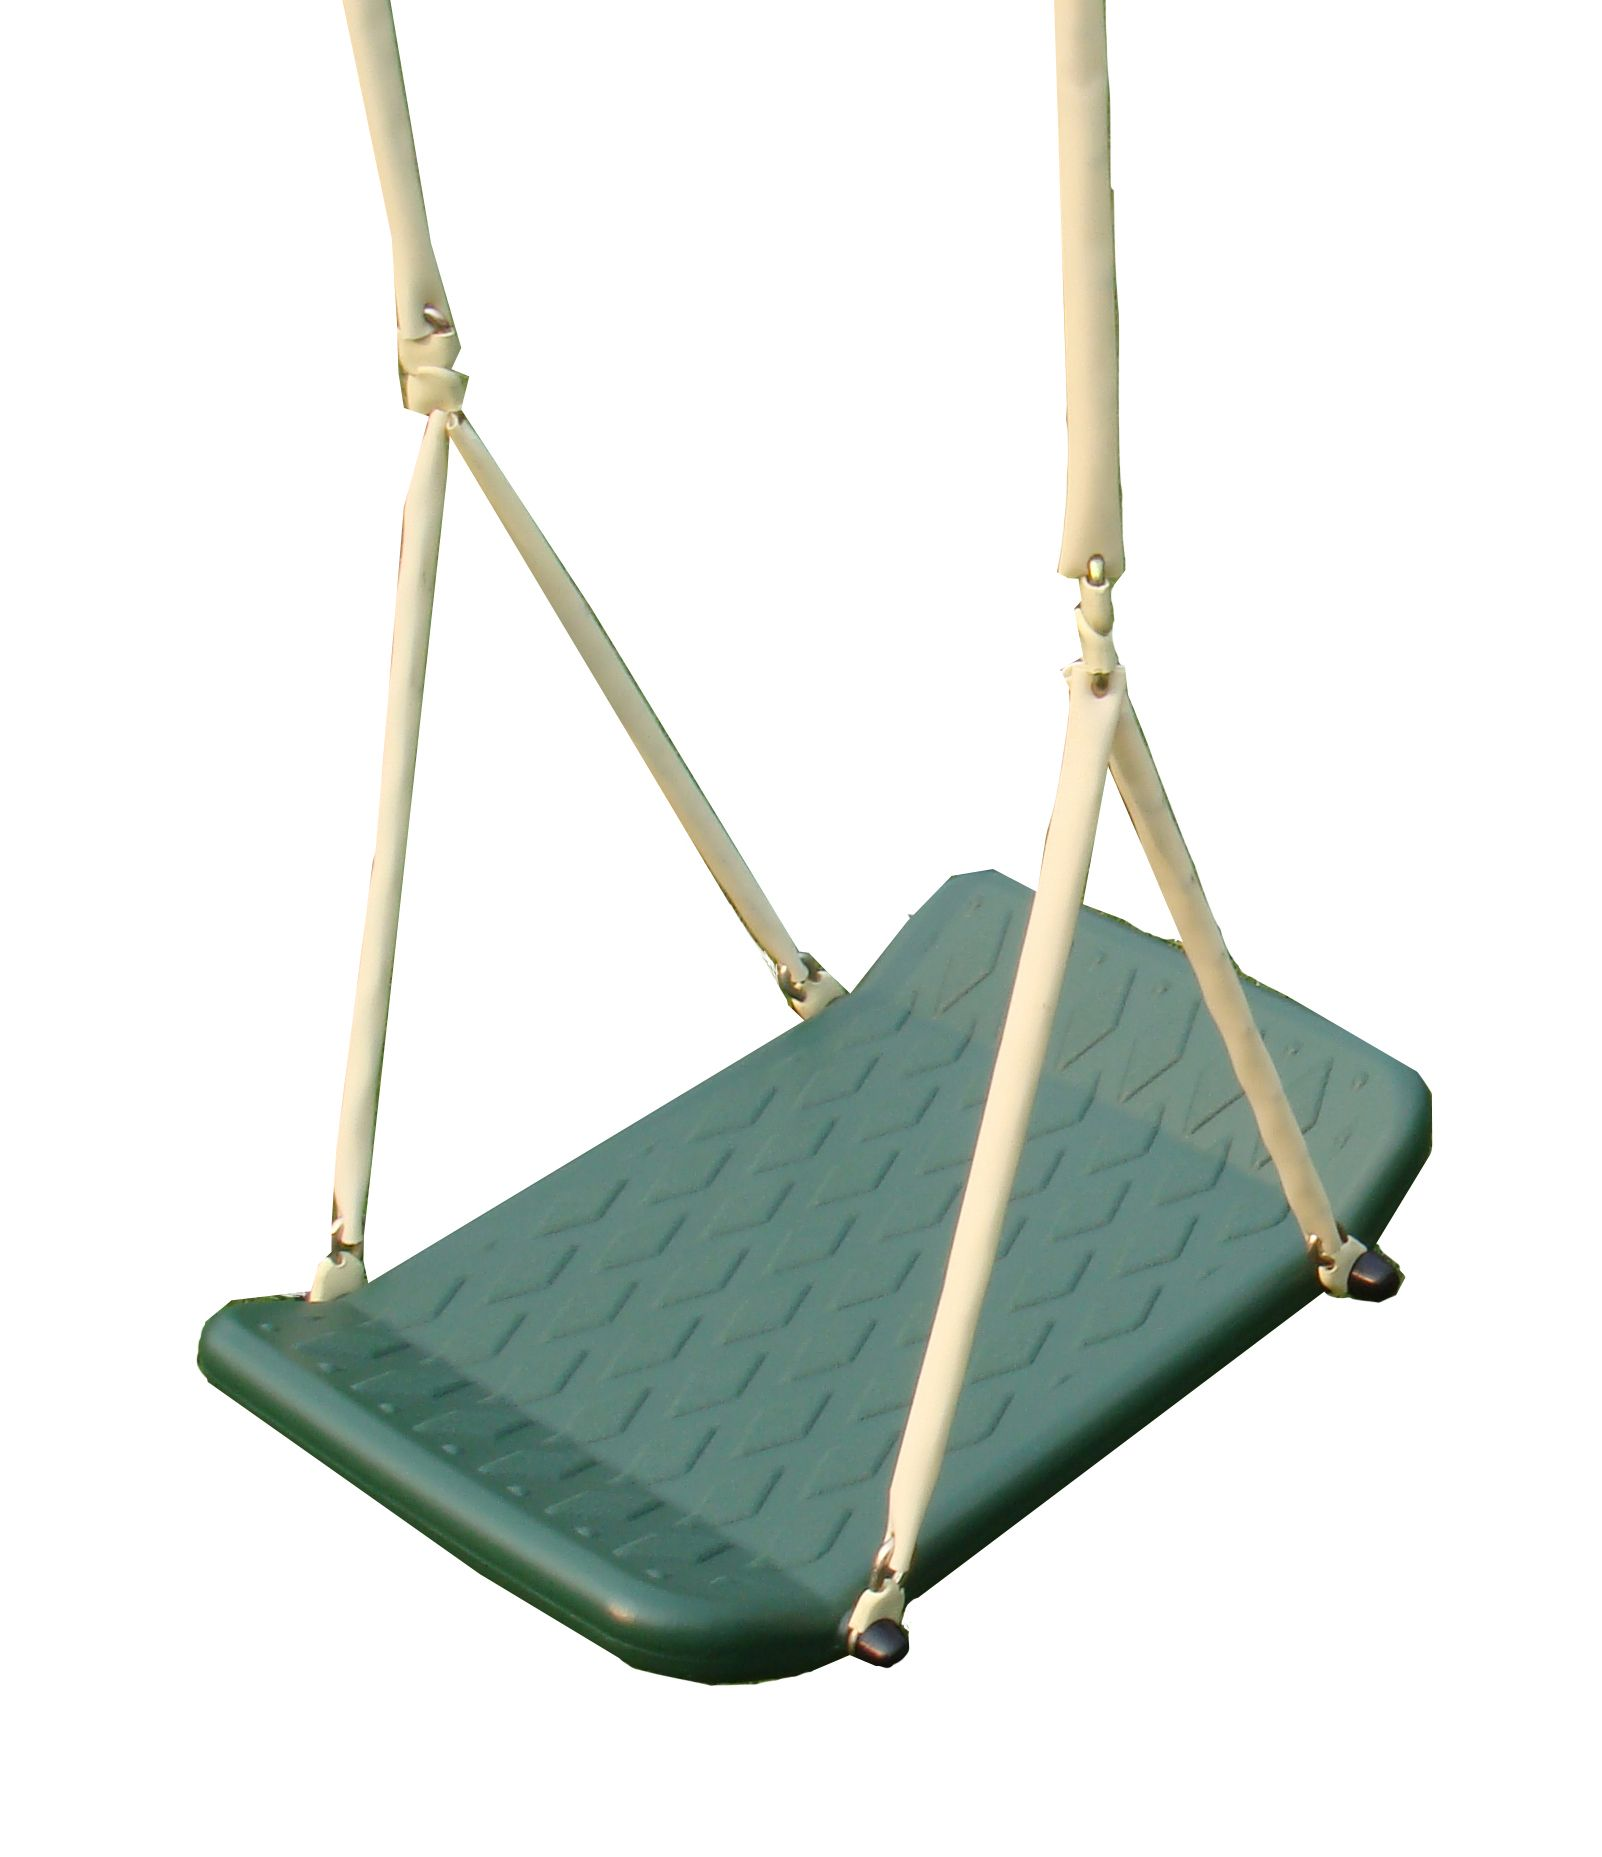 Sportspower The Adventure Play 8-Leg Swing Set